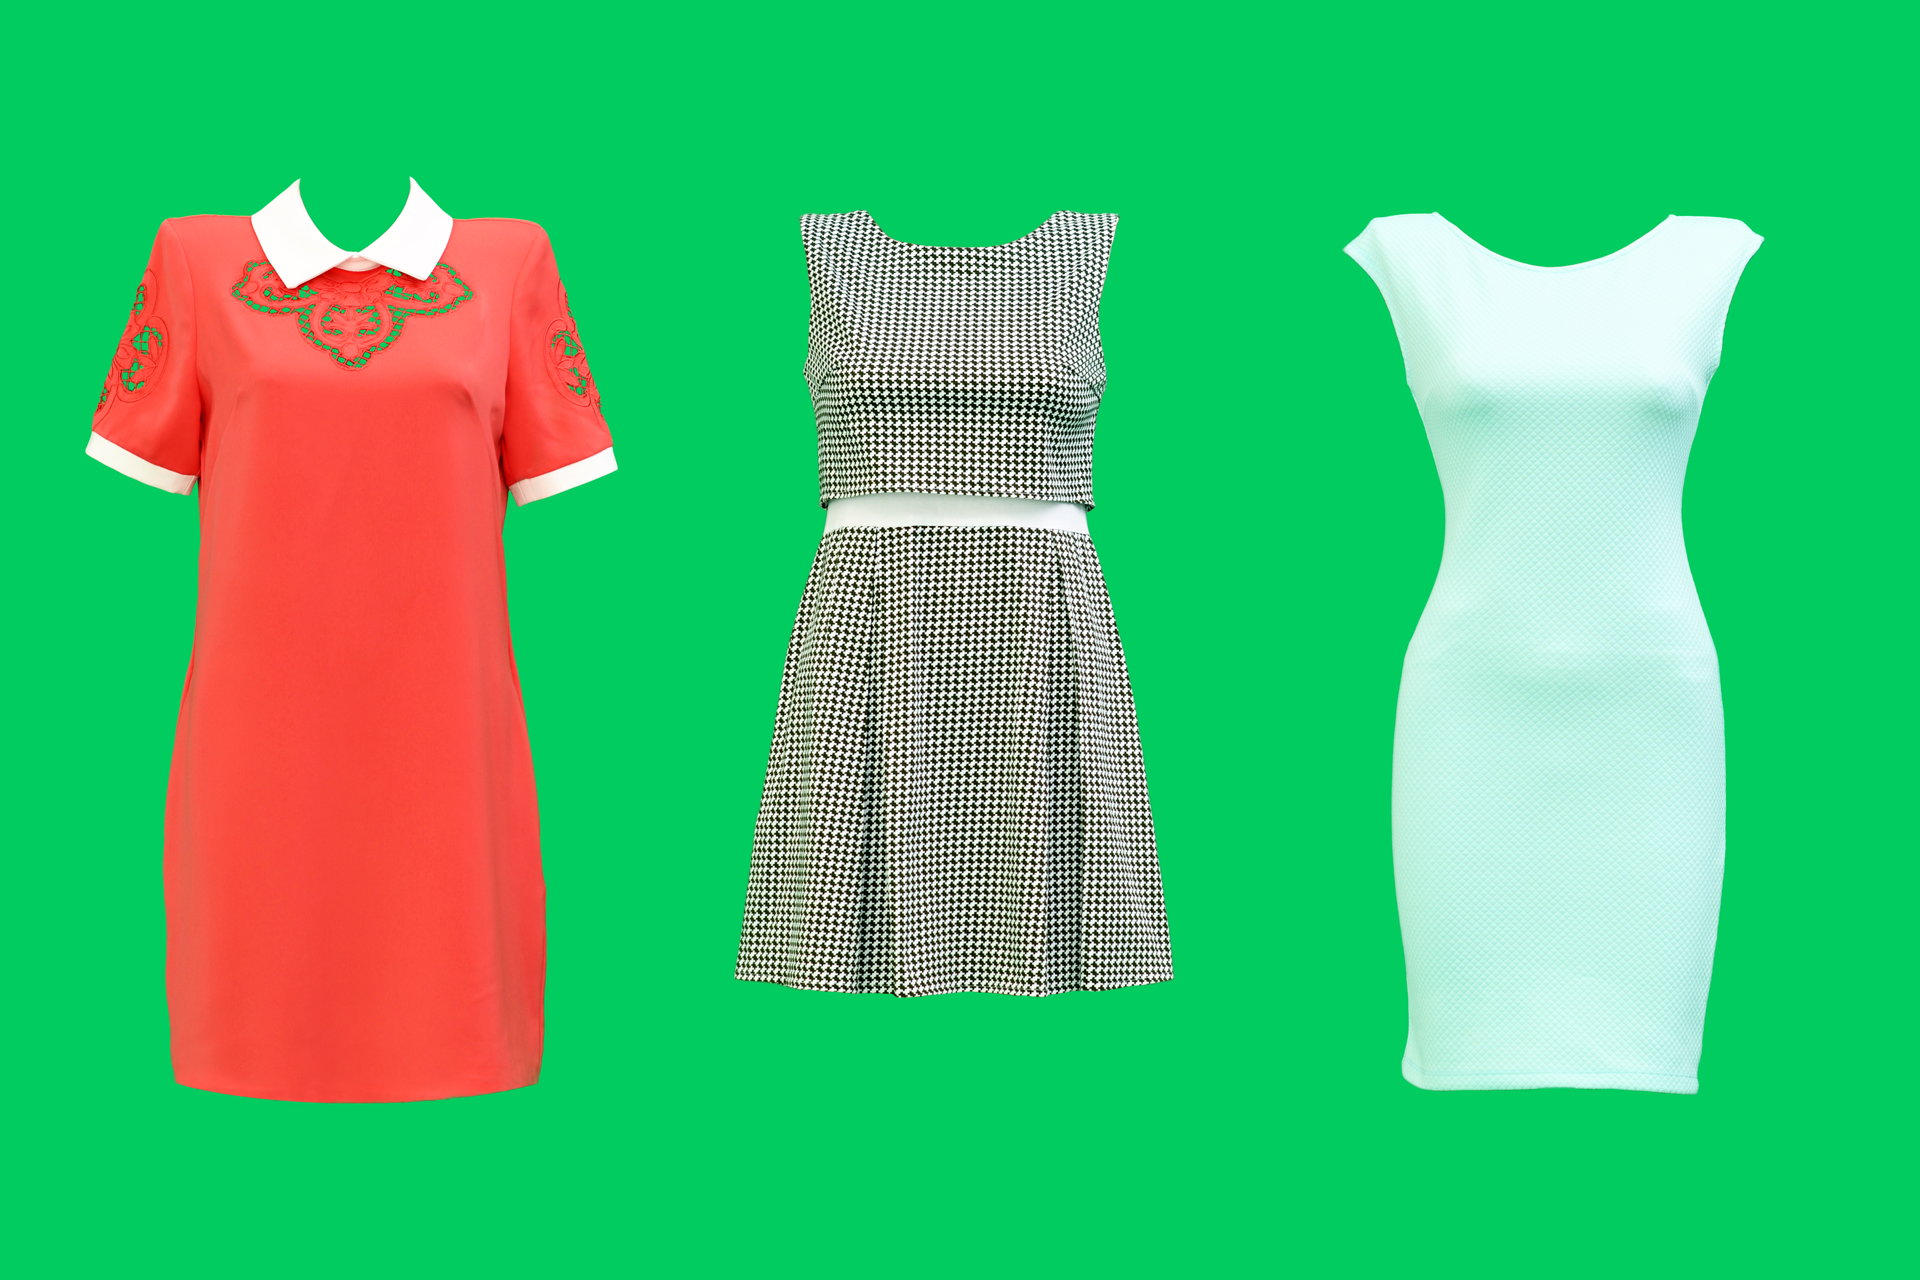 Dresses on a green background